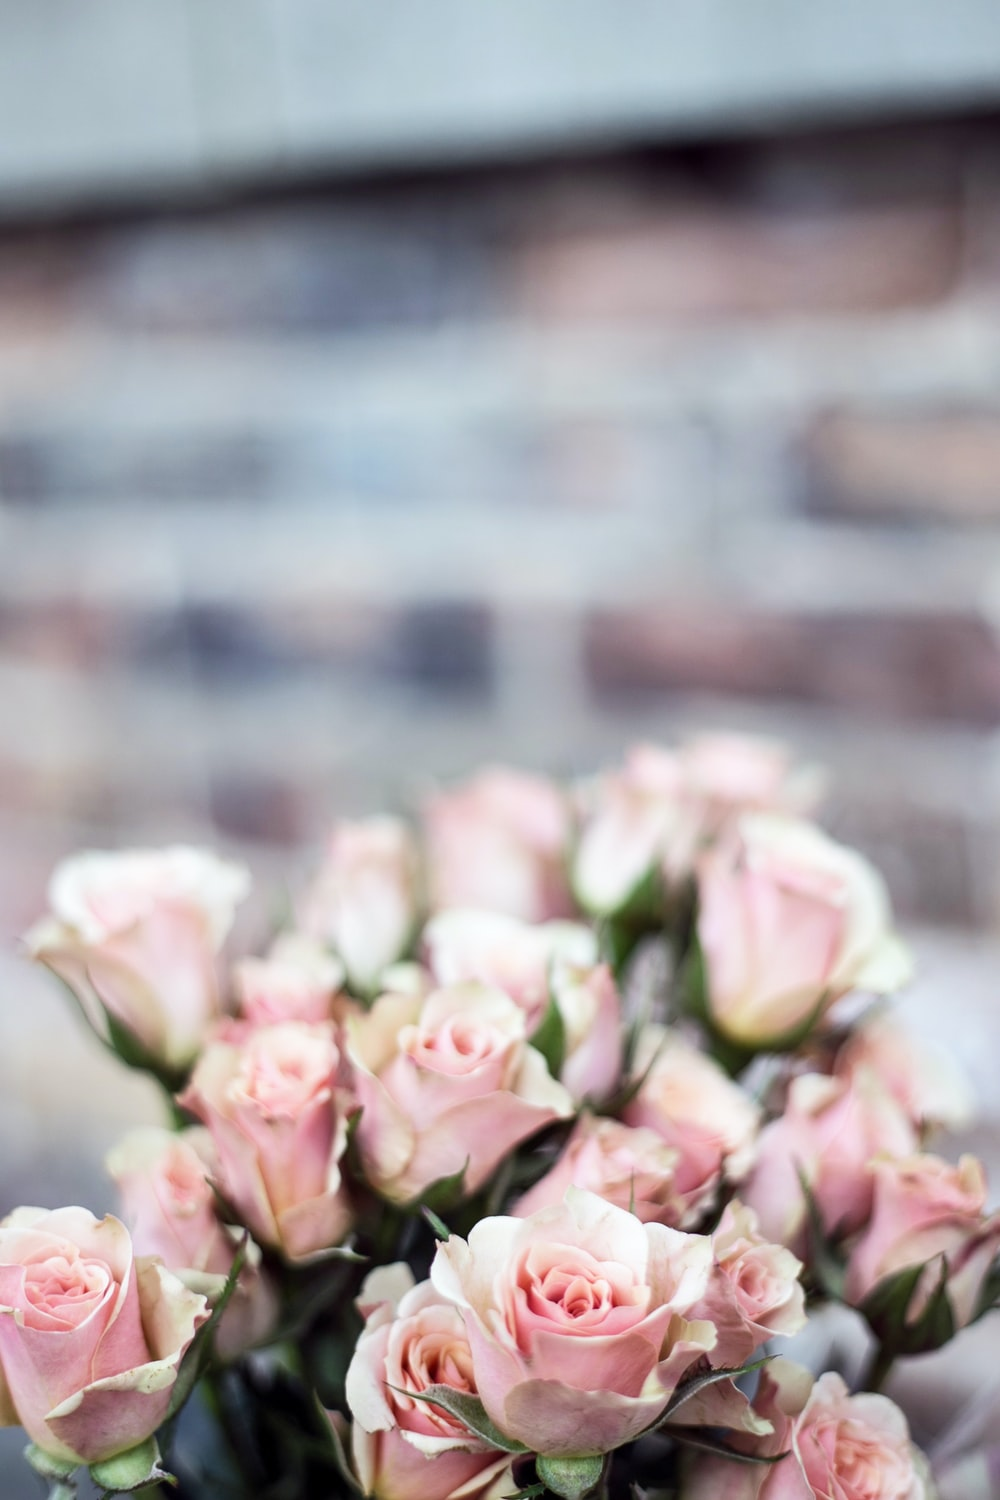 selective focus photography of pink rose flowers